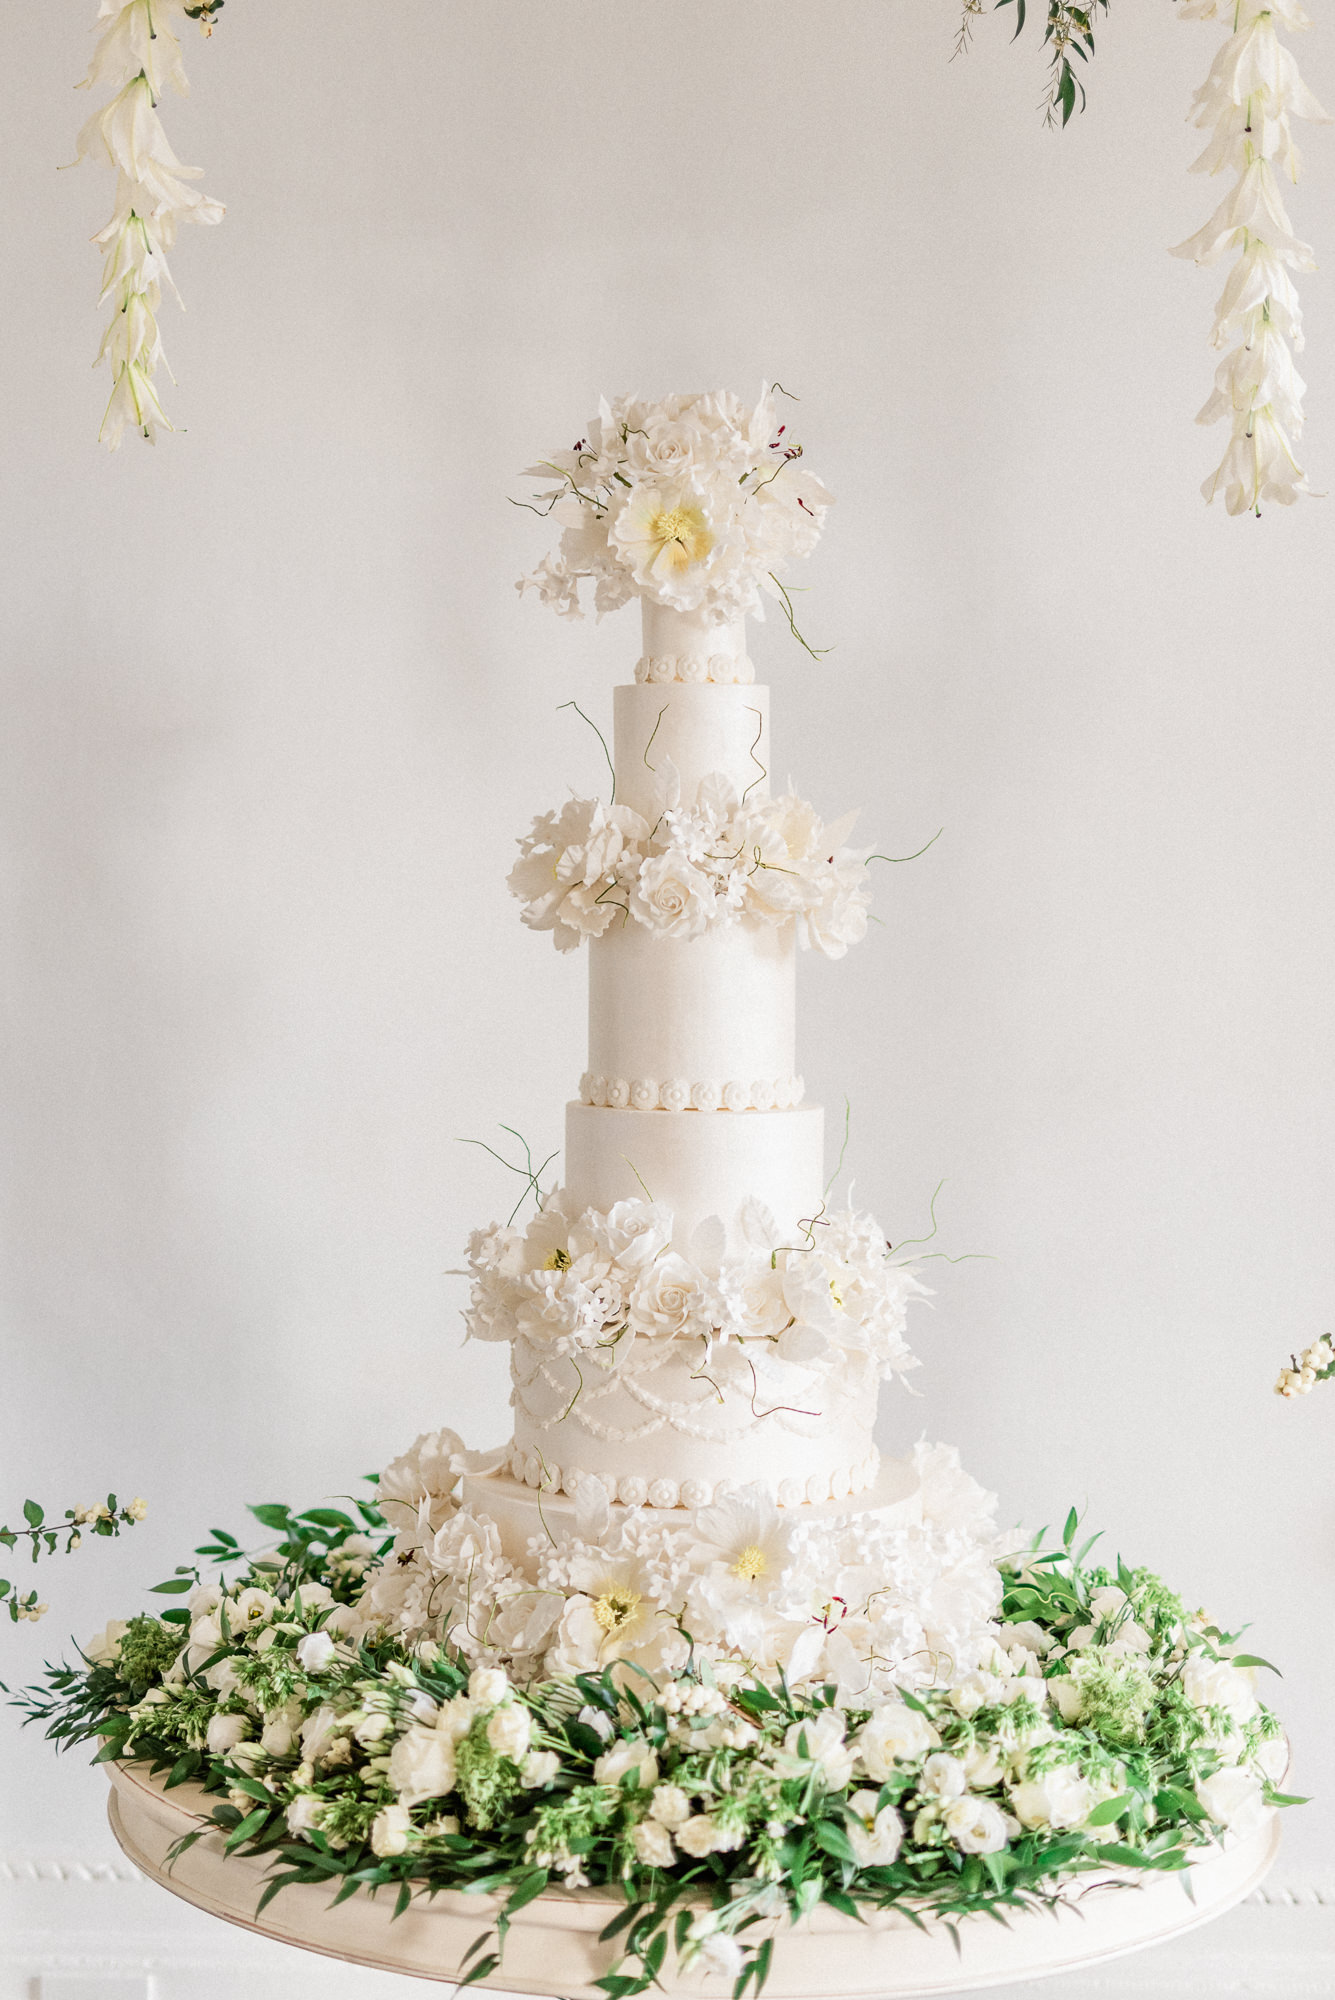 Six Tiered wedding cake with white peony top and floral layers - Gianluca Adovasio Photography